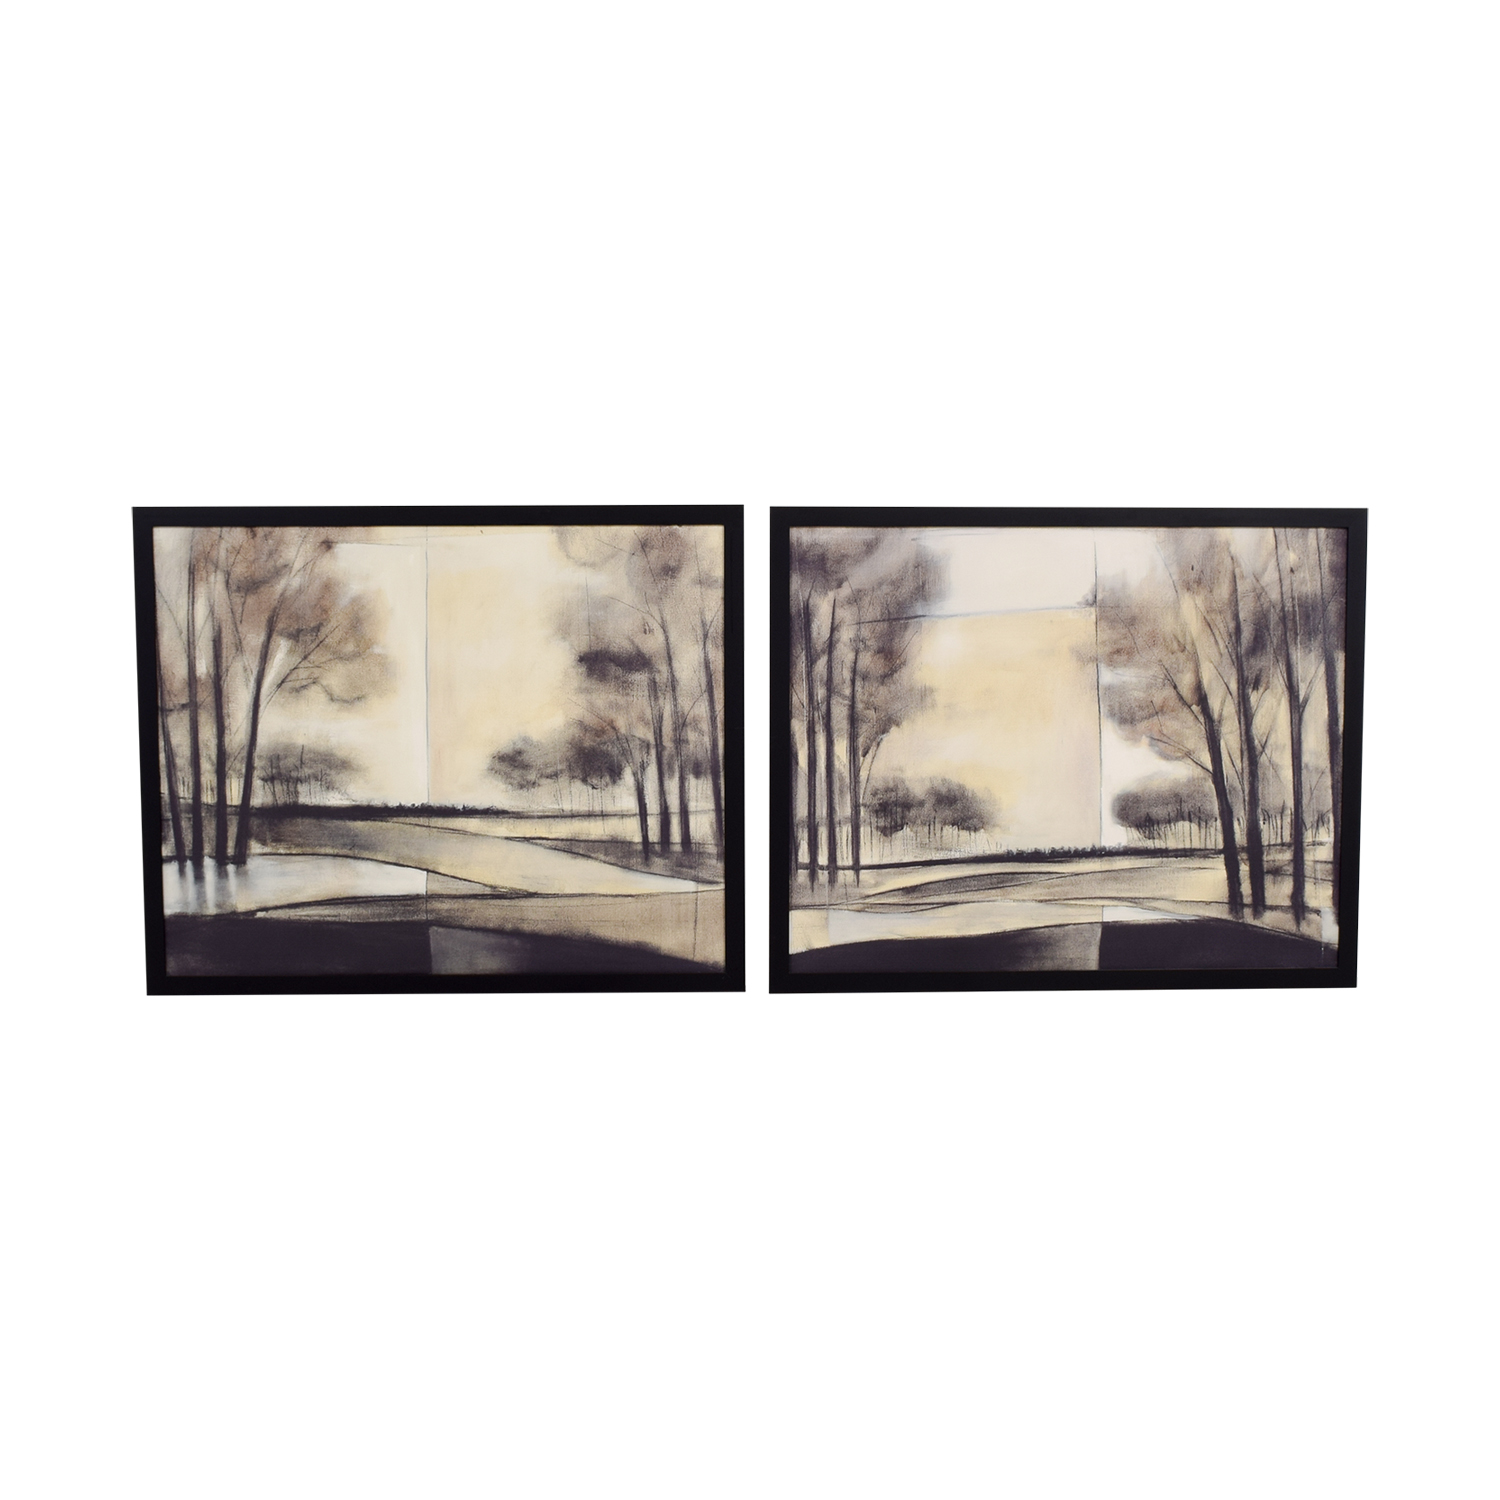 Black and White Scenic Art on Canvas on sale